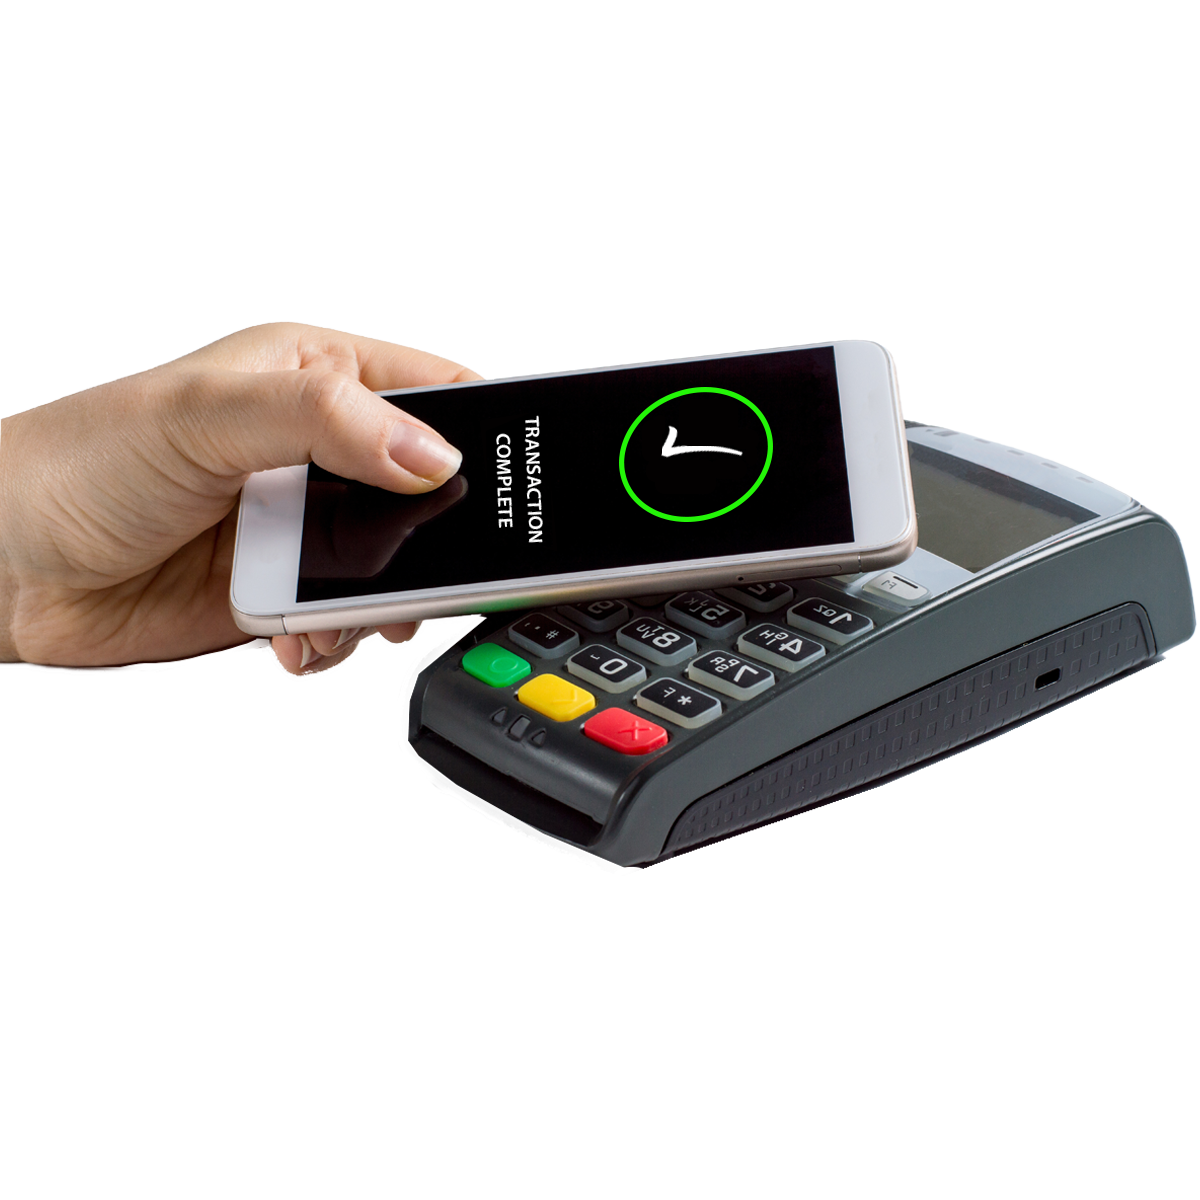 paying use mobile phone at a card reader